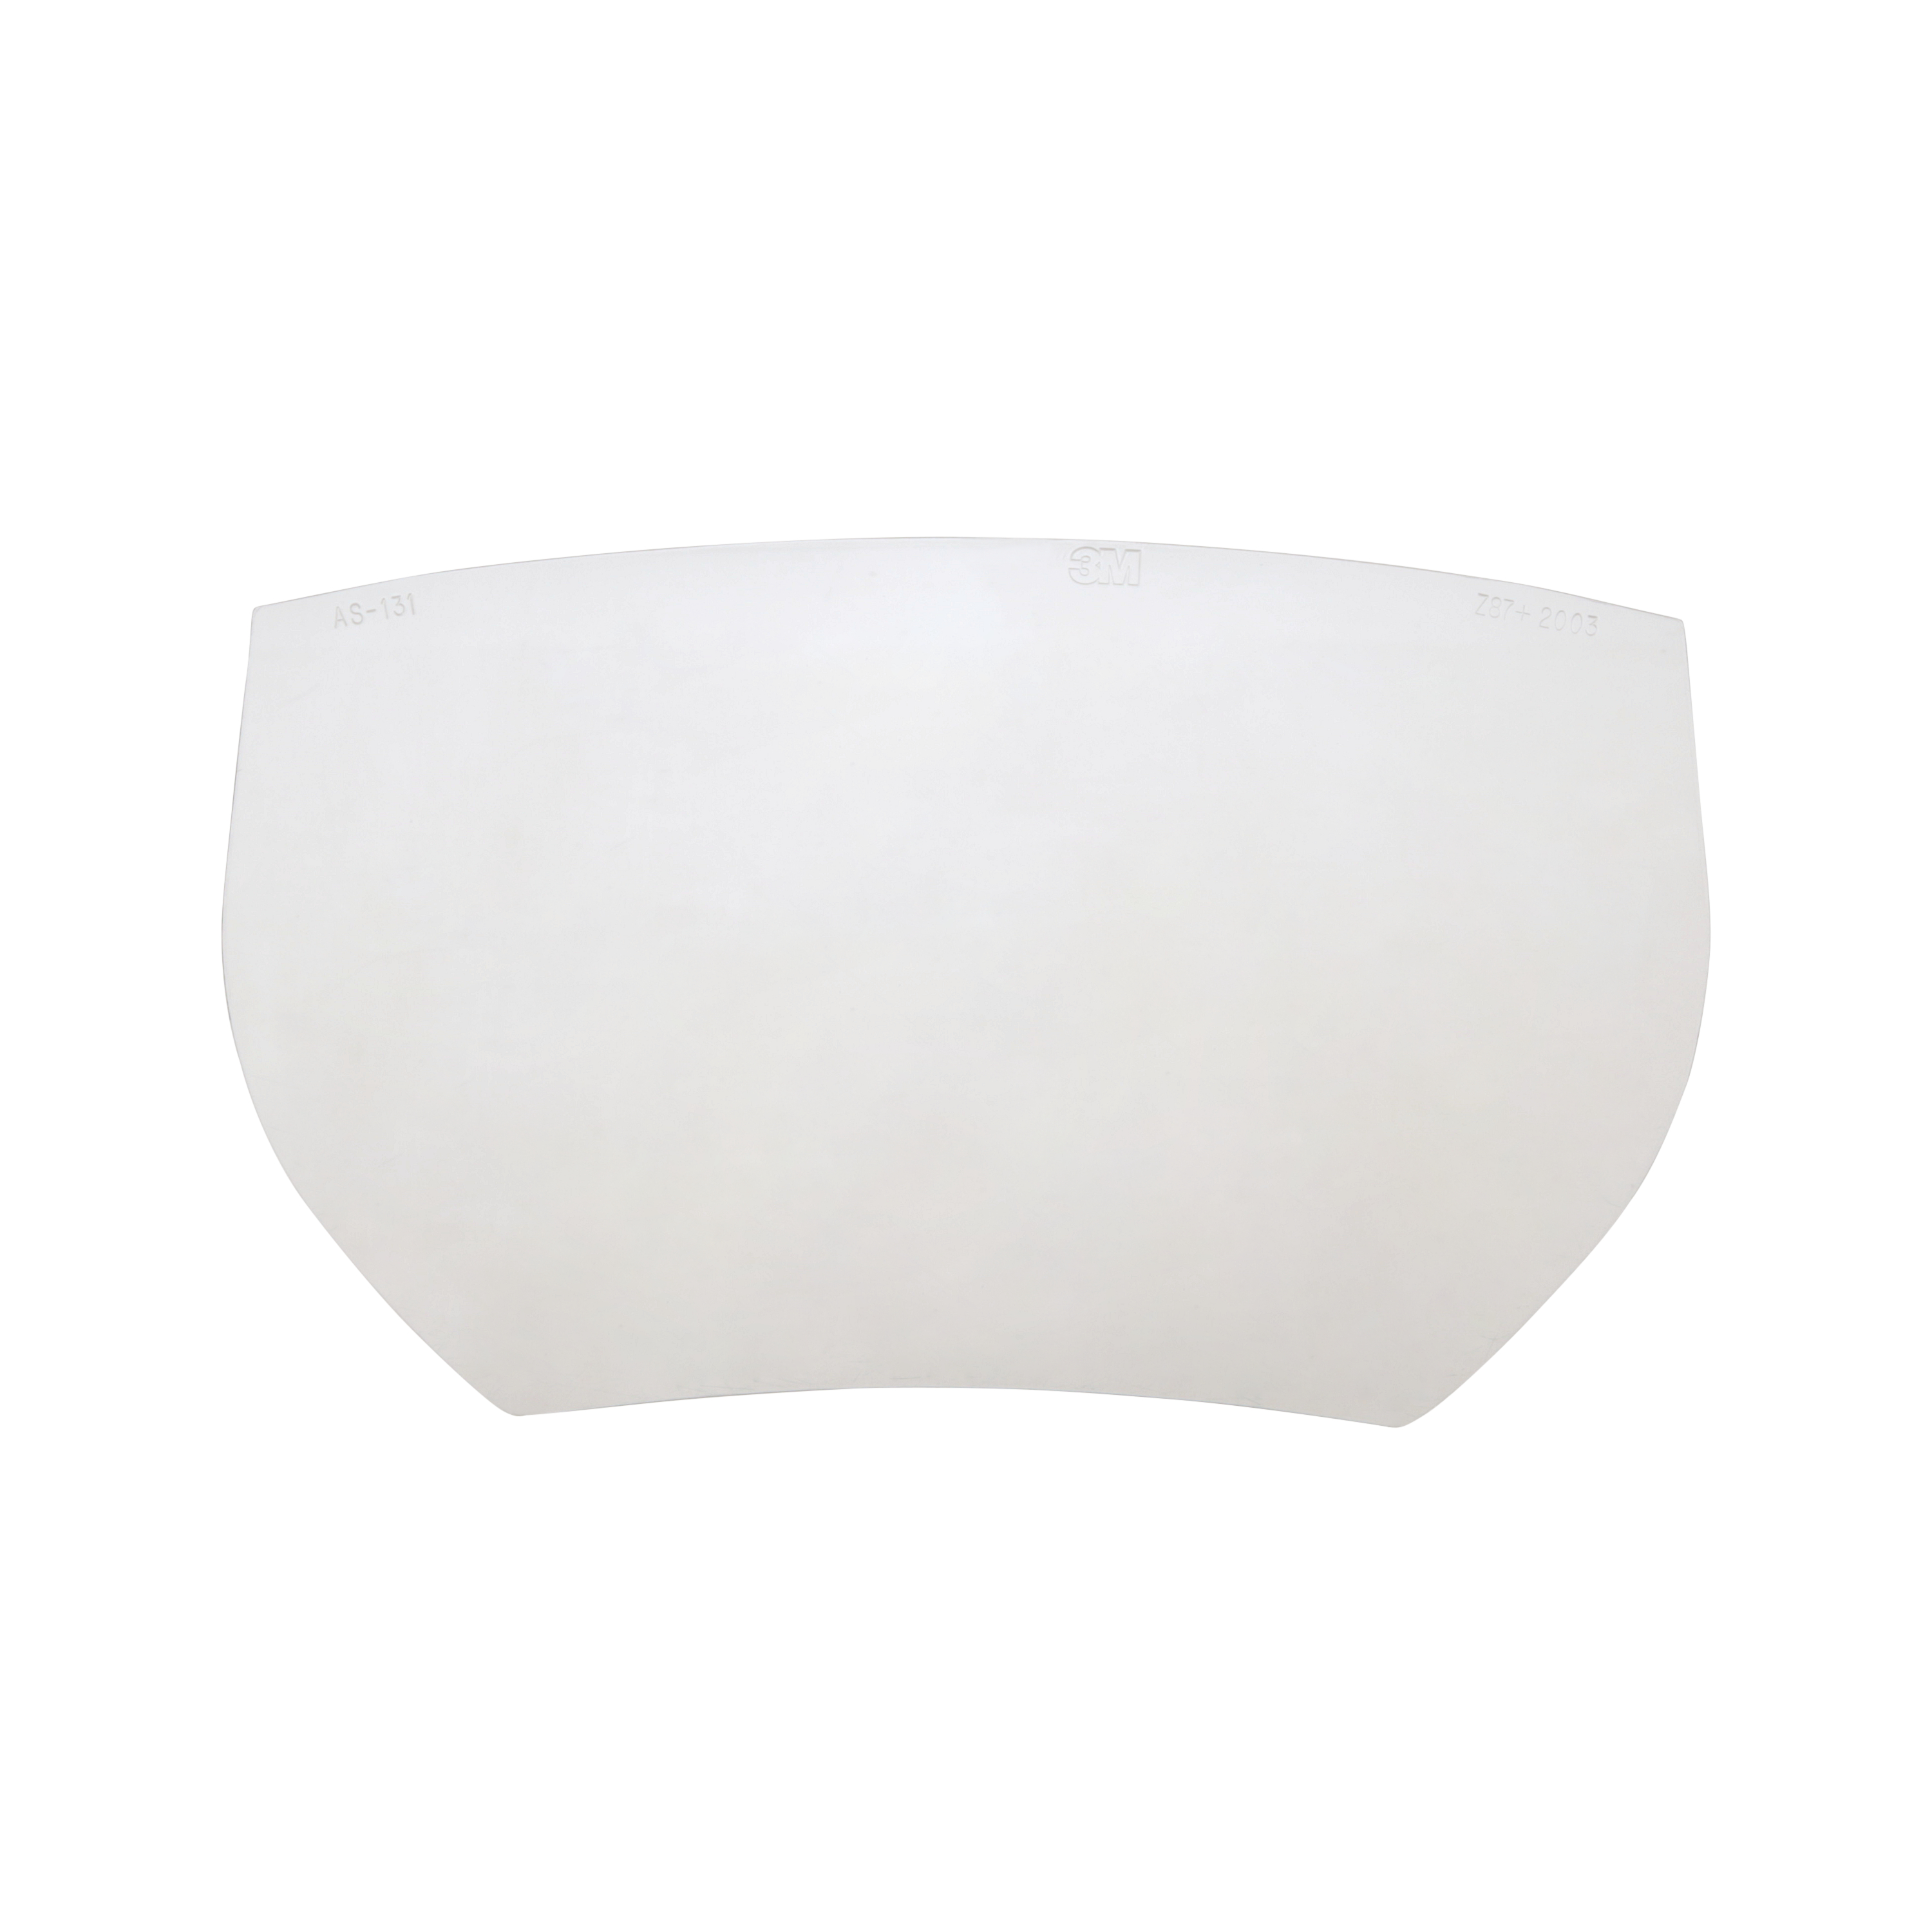 3M™ Visor, AS-131-10, anti-fog, scratch resistant, 10/pack